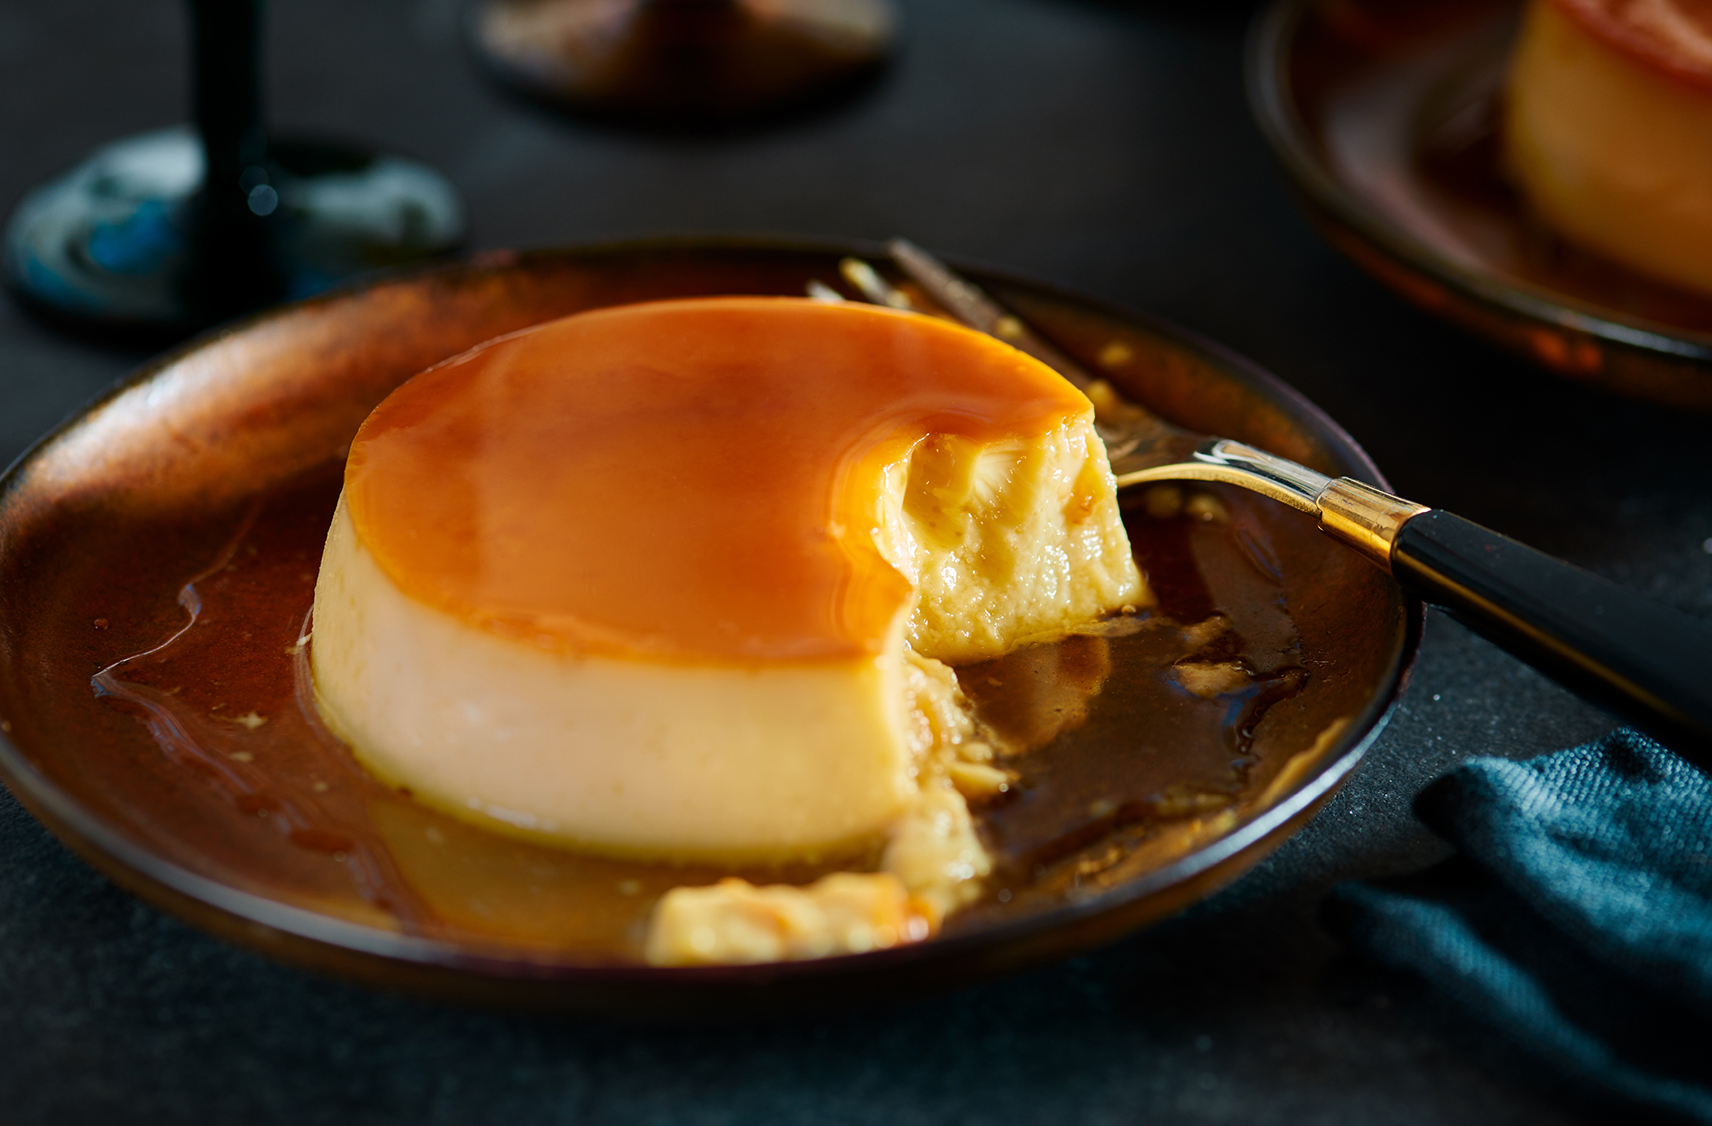 A crème caramel dessert on a plate next to a fork with 1 bite missing